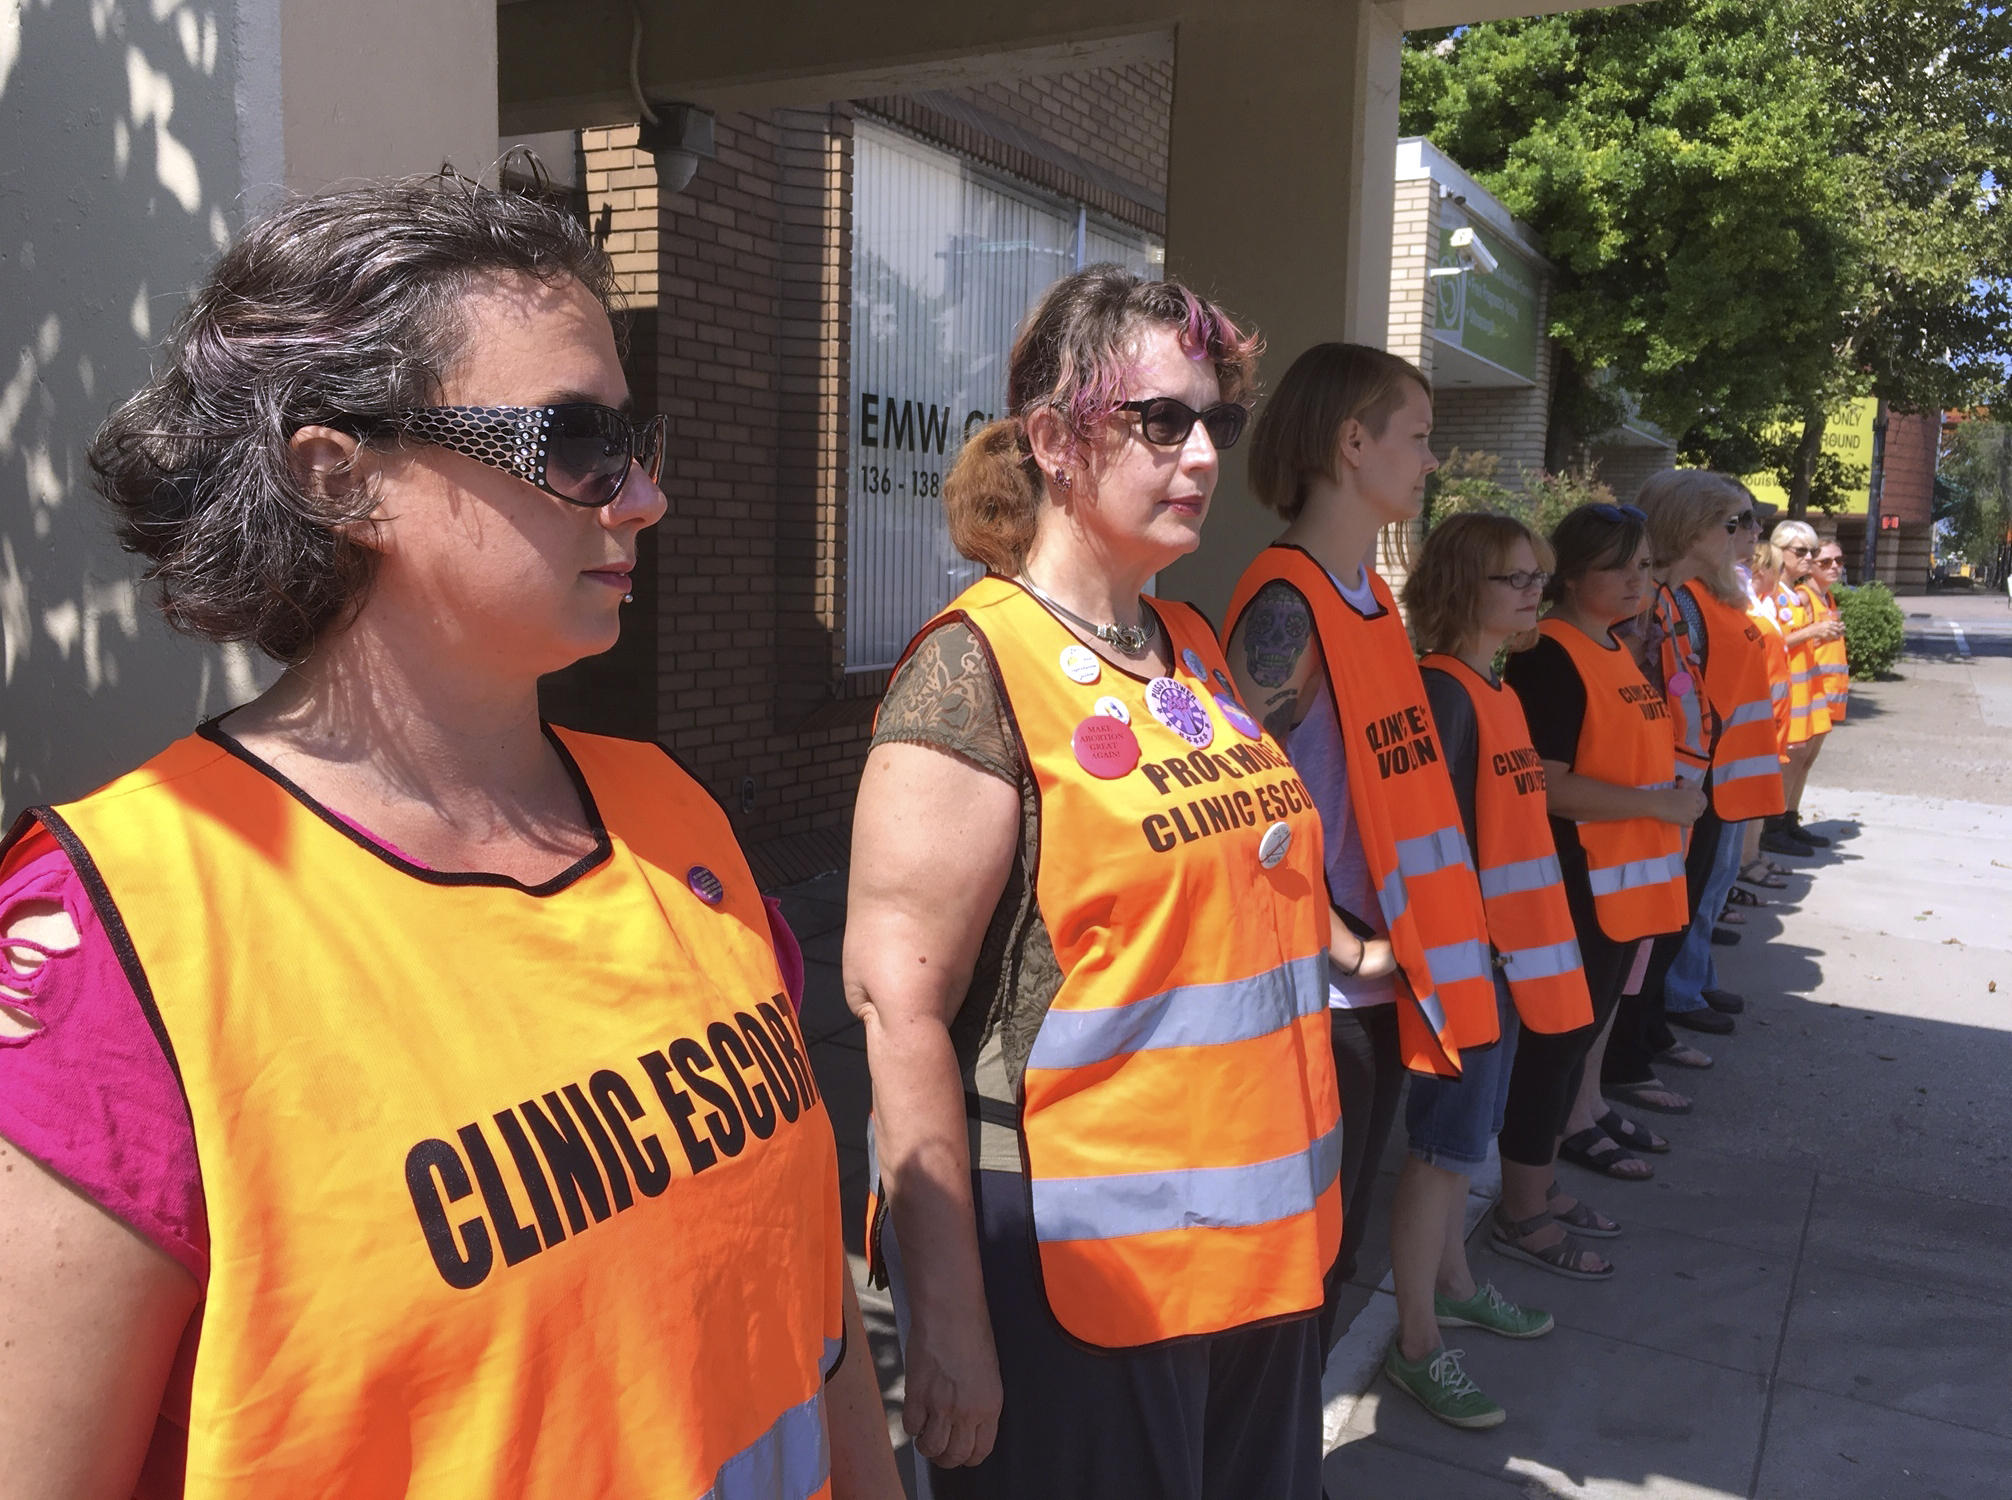 Meg Stern left and other escort volunteers are lined up outside the EMW Women's Surgical Center in Louisville Ky